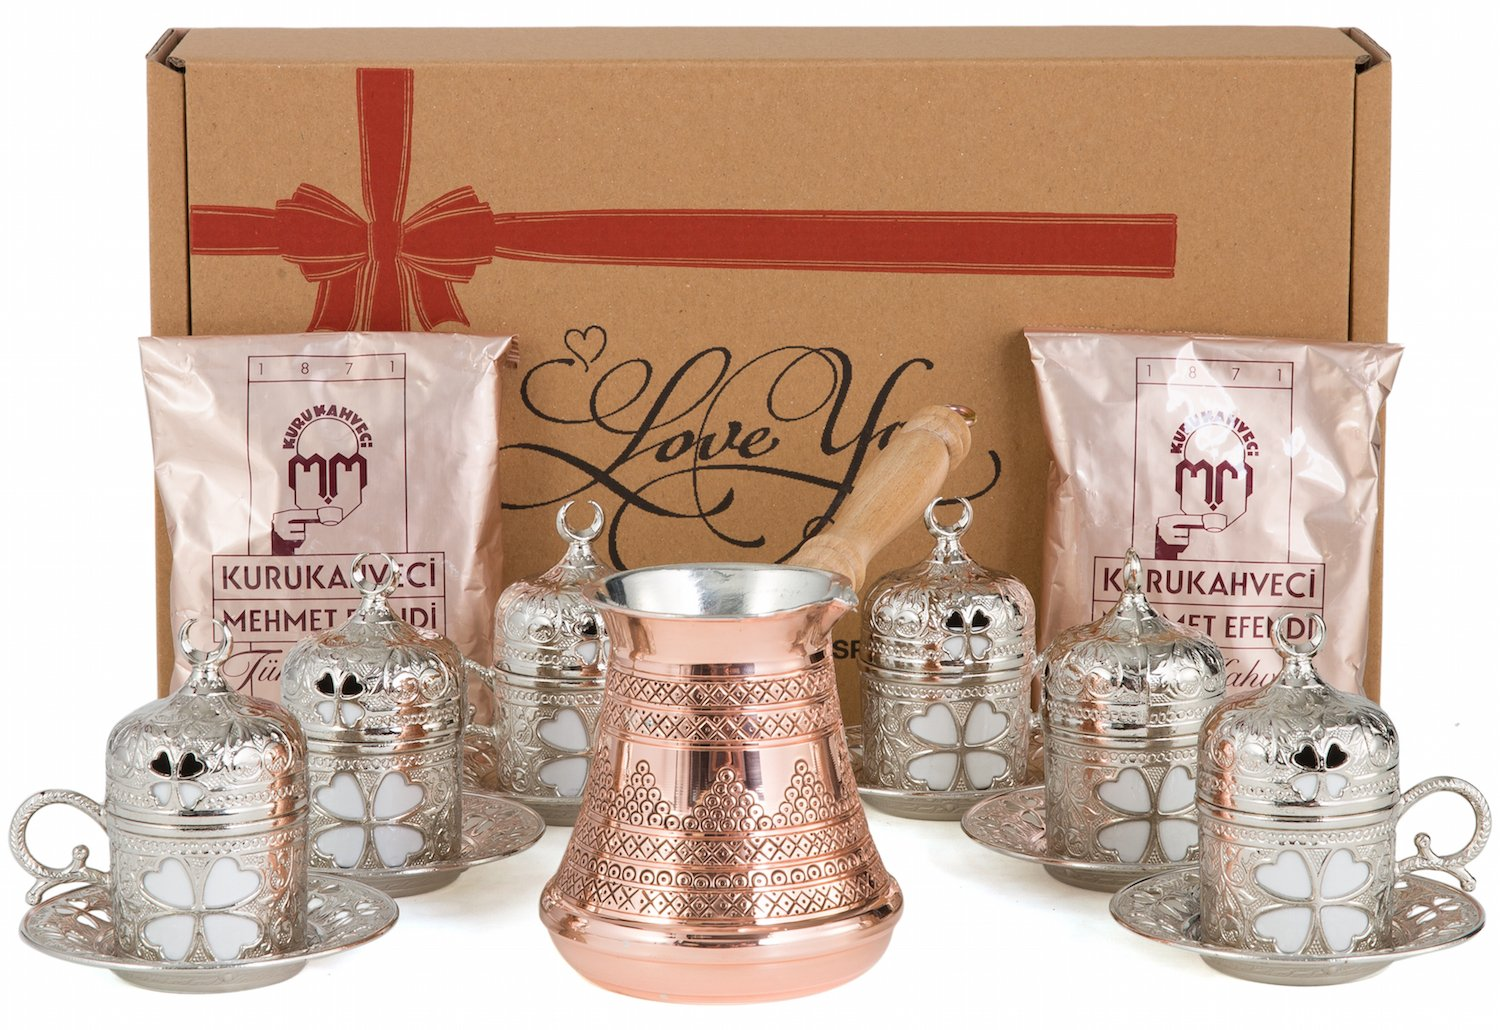 CopperBull Premium Turkish Greek Coffee Espresso Full Set with Copper Pot, Cups, Coffee for 6 (Silver) by CopperBull (Image #1)